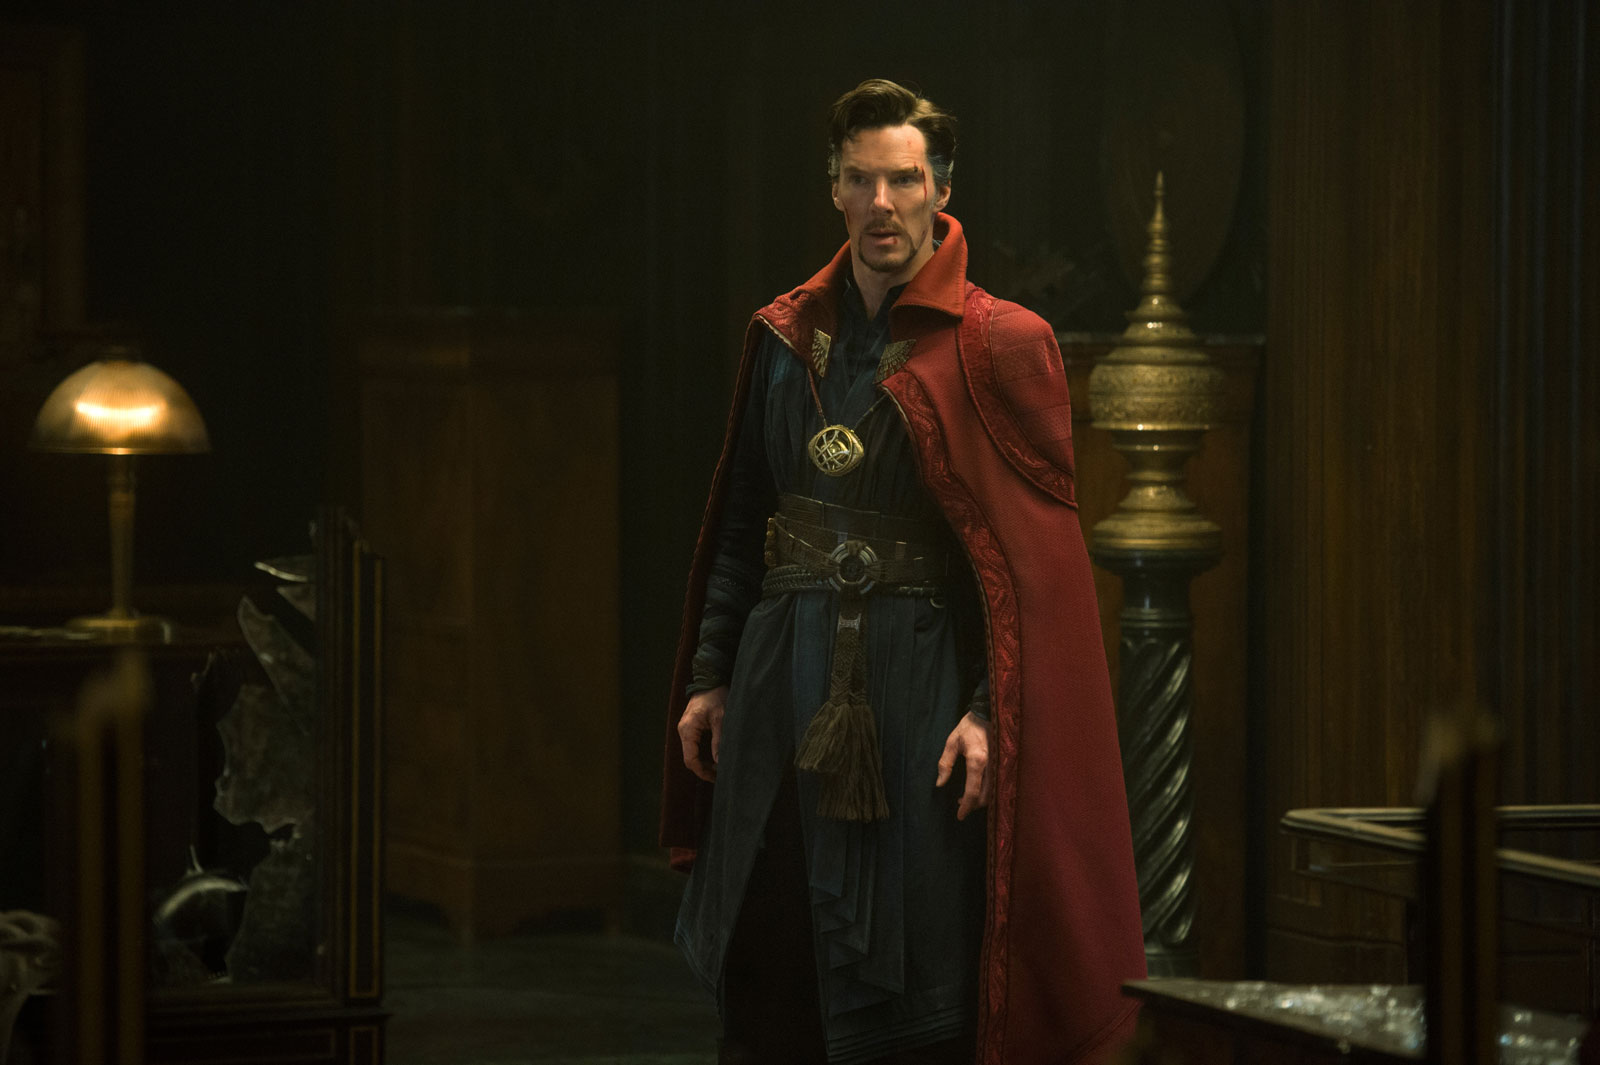 Benedict Cumberbatch title character Doctor Strange